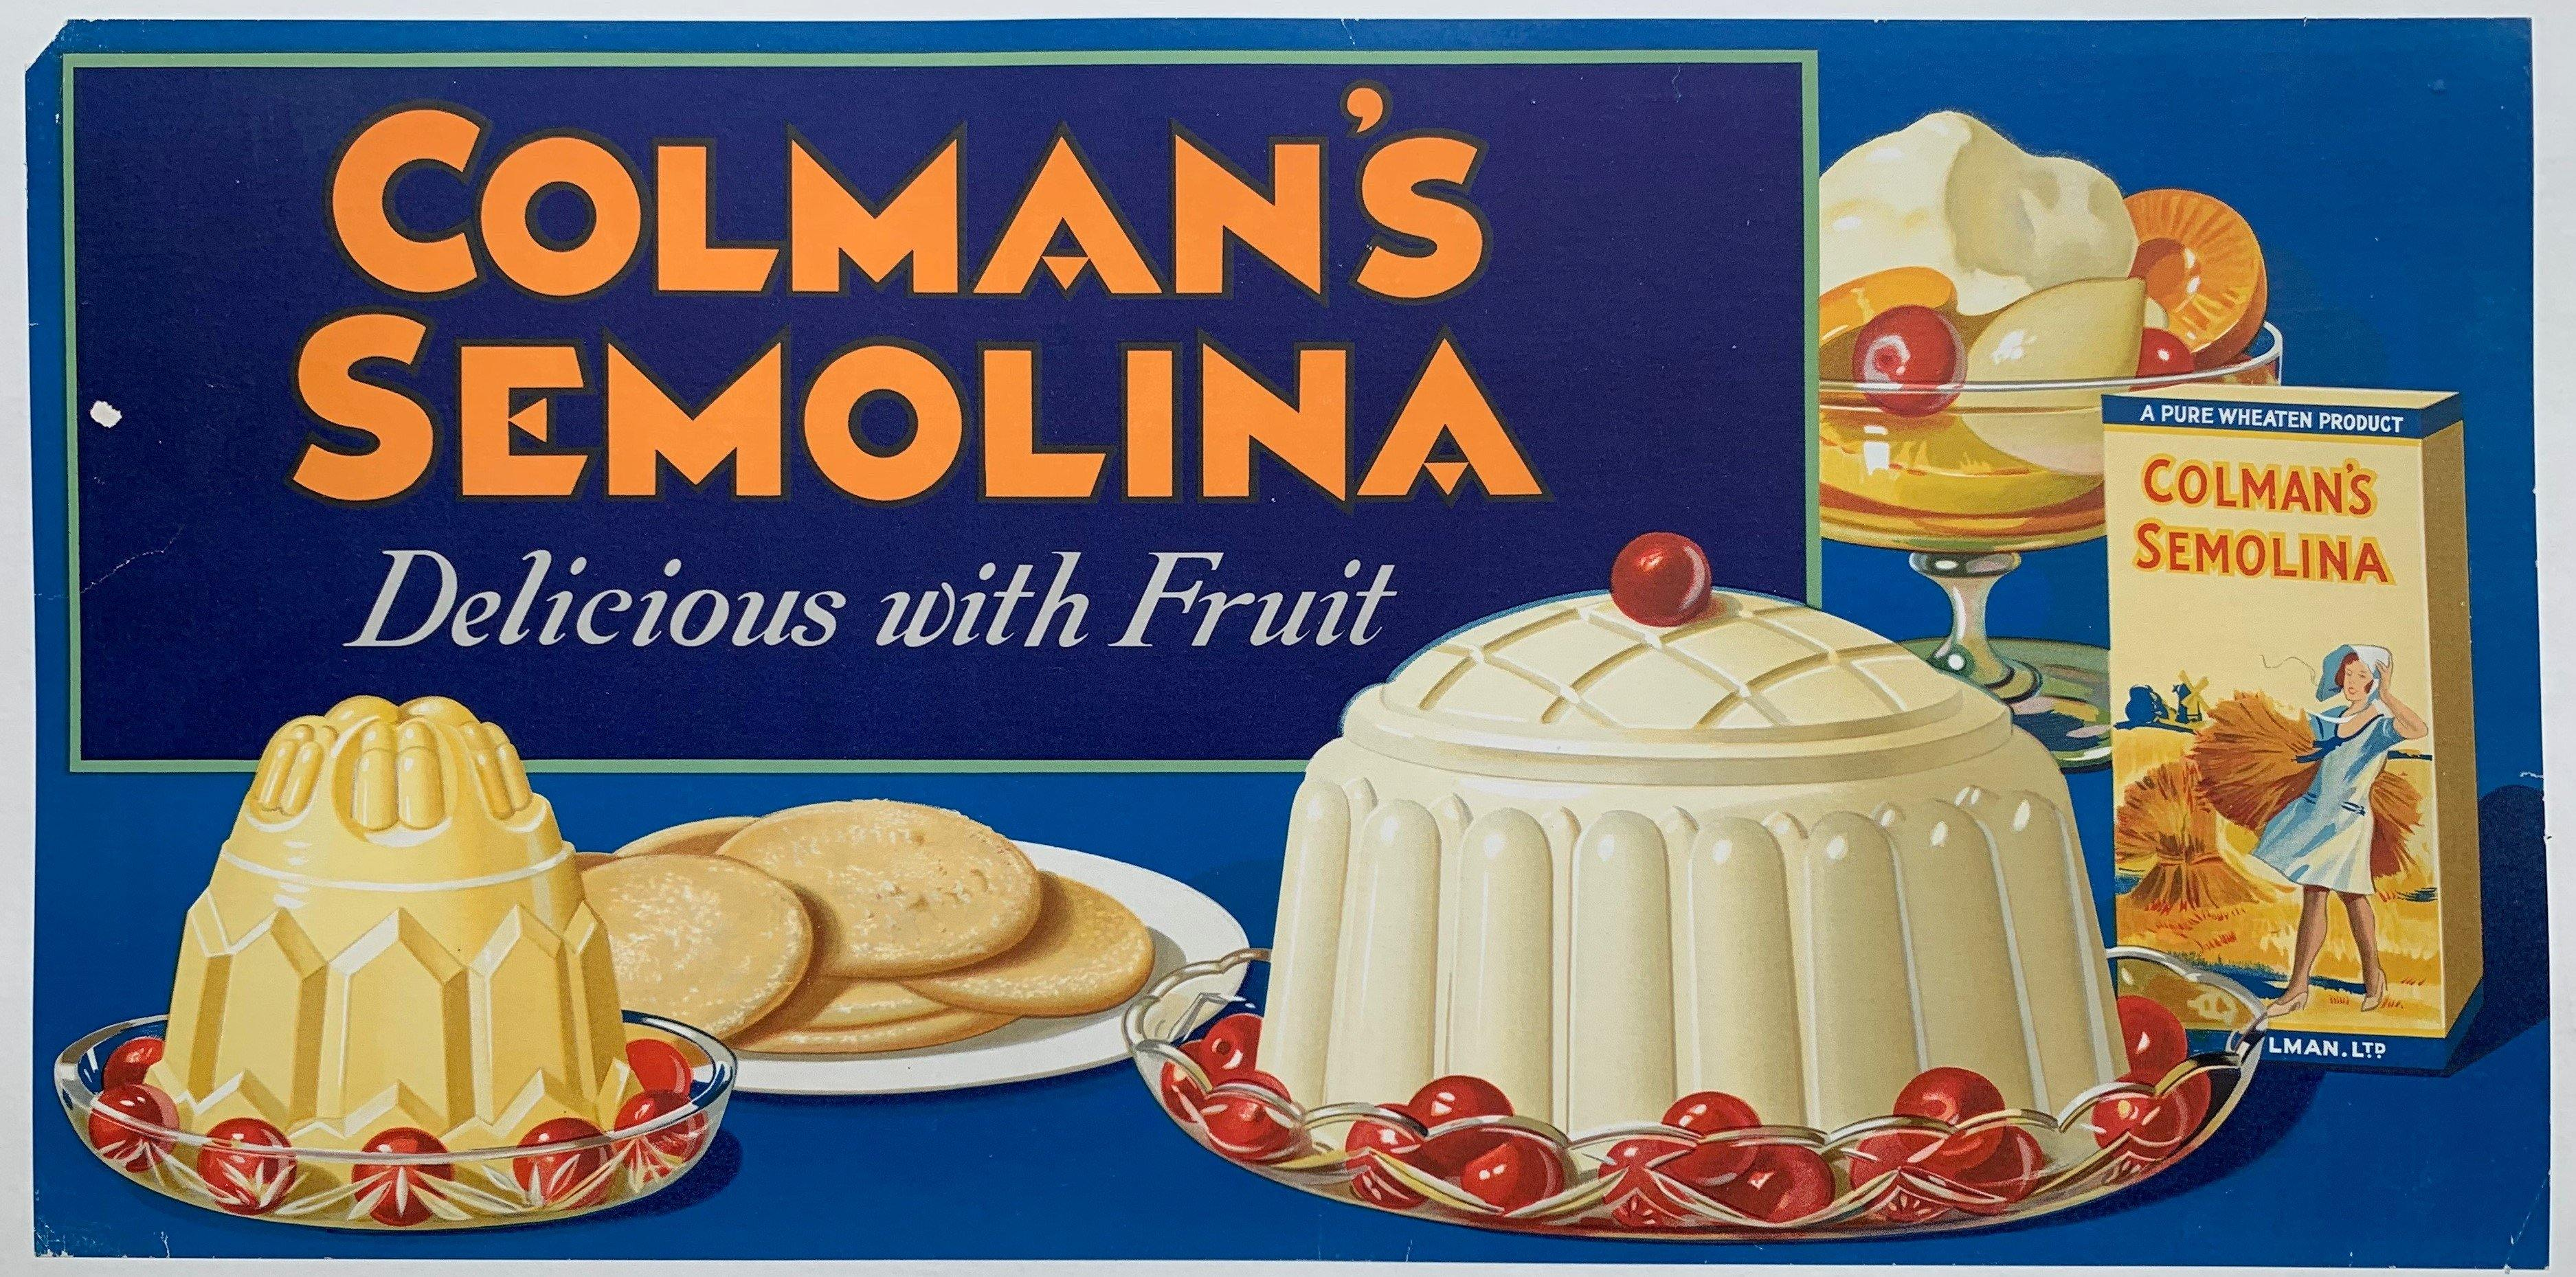 Colman's Semolina Delicious with Fruit